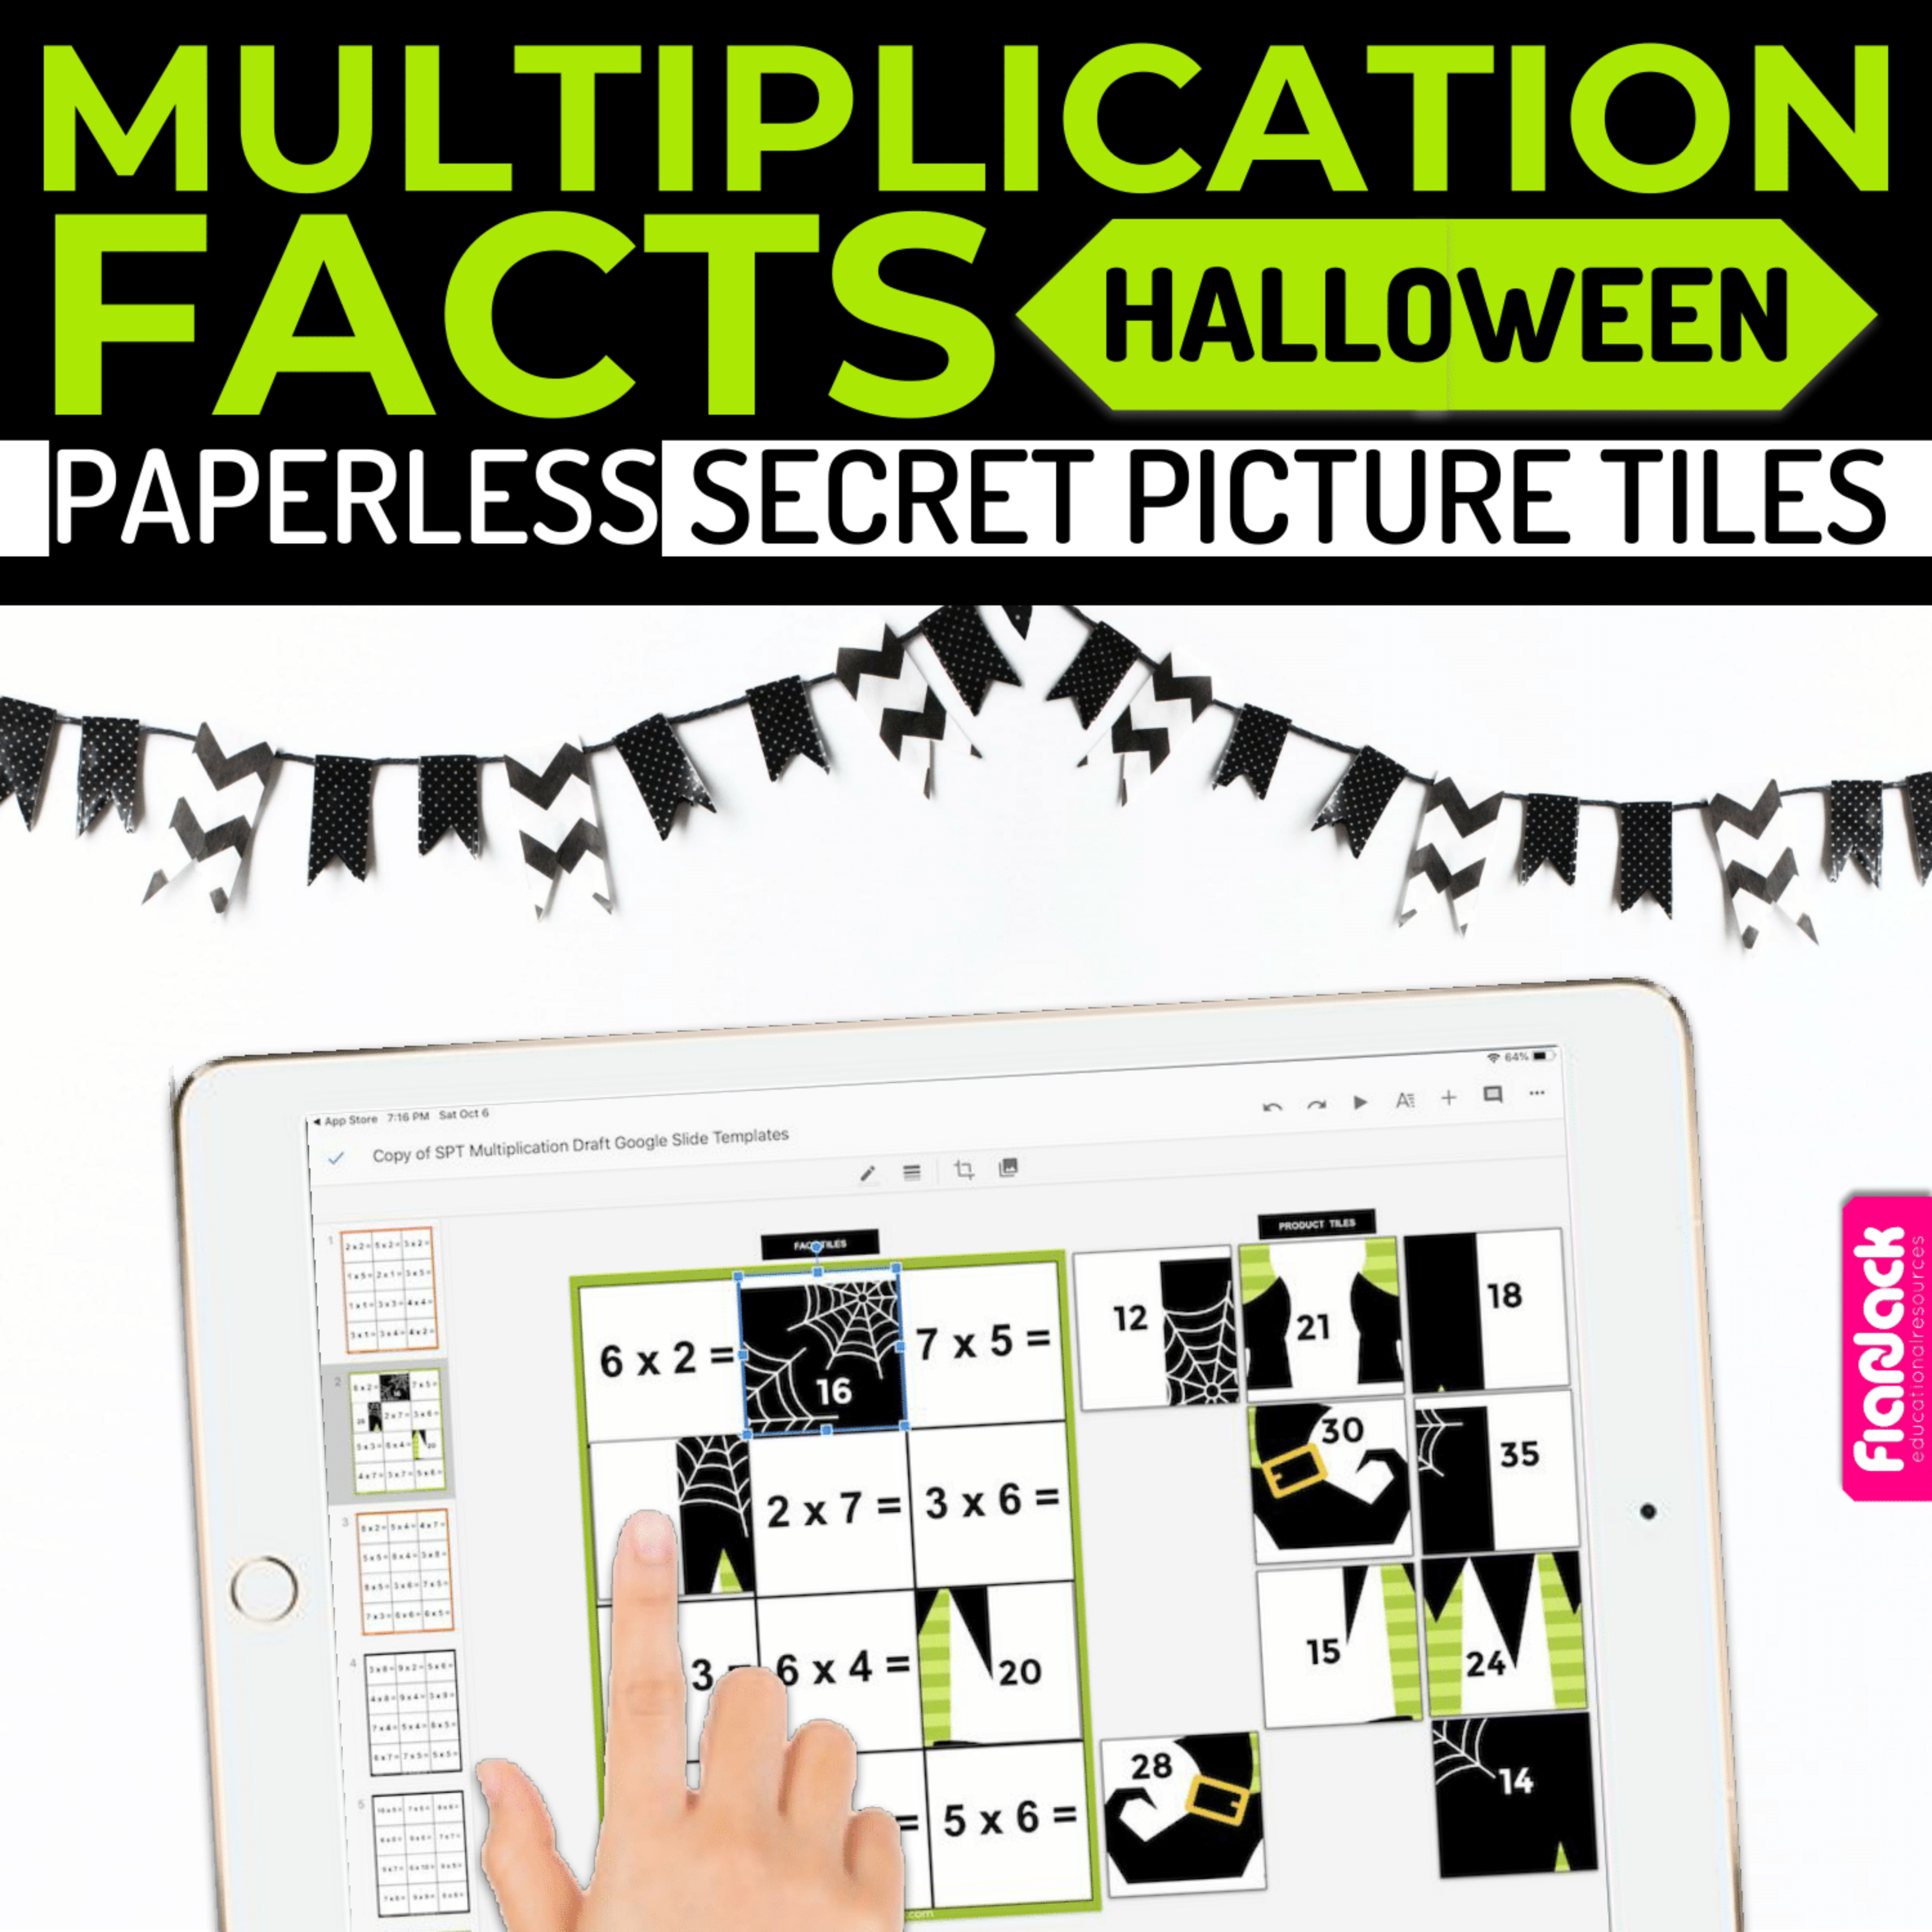 Halloween MULTIPLICATION FACTS Paperless + Printable Secret Picture SET